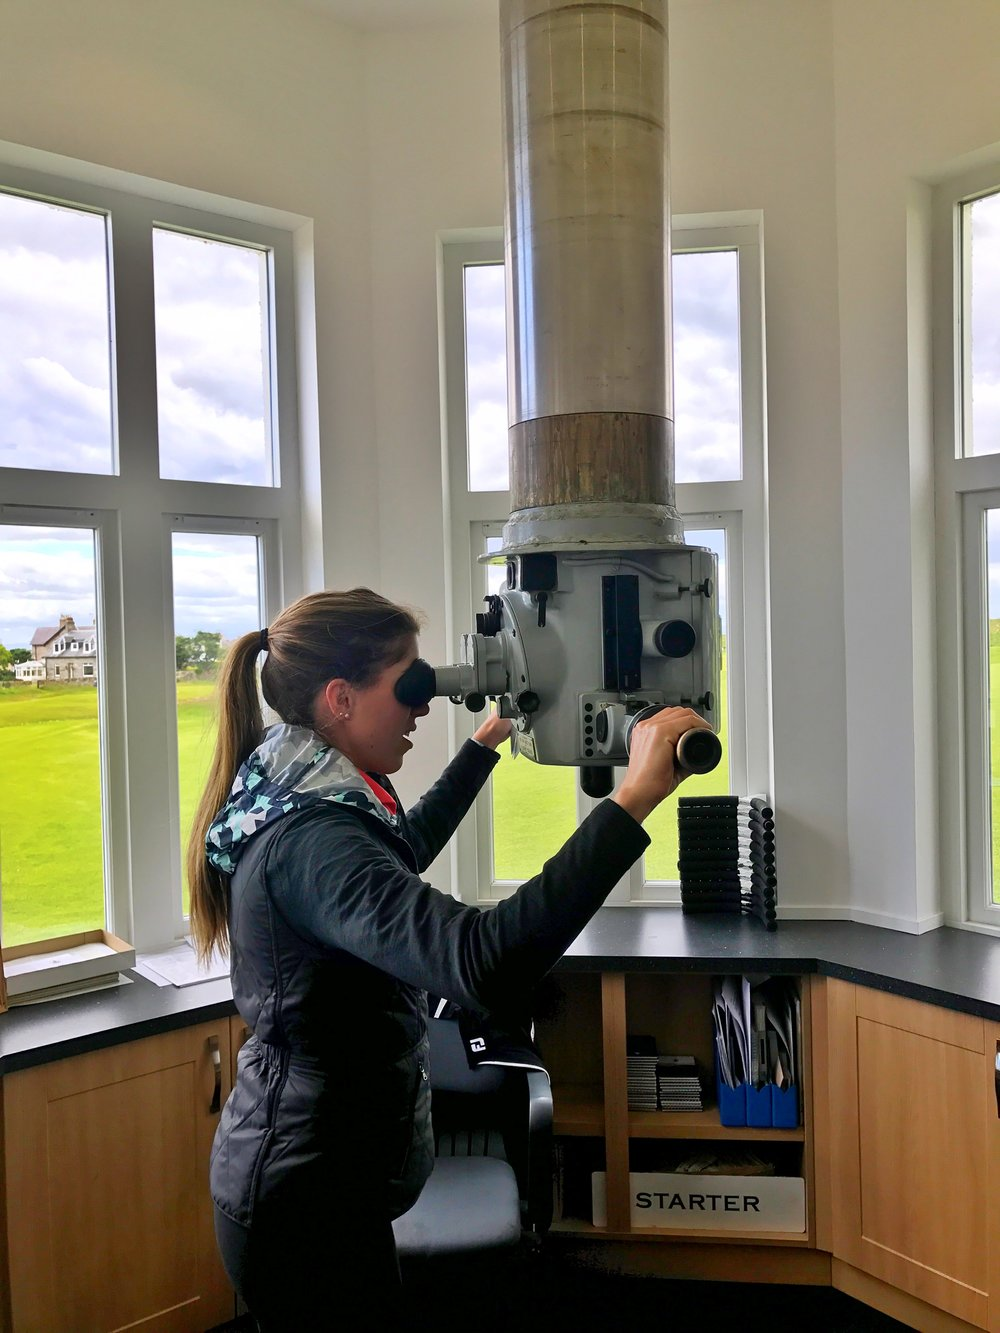 Ashley checks out the periscope clubhouse at Elie Golf Links.  This is an actual periscope from the HMS Excalibur submarine that allows the starter's office to alert golfers when the 1st fairway is clear.